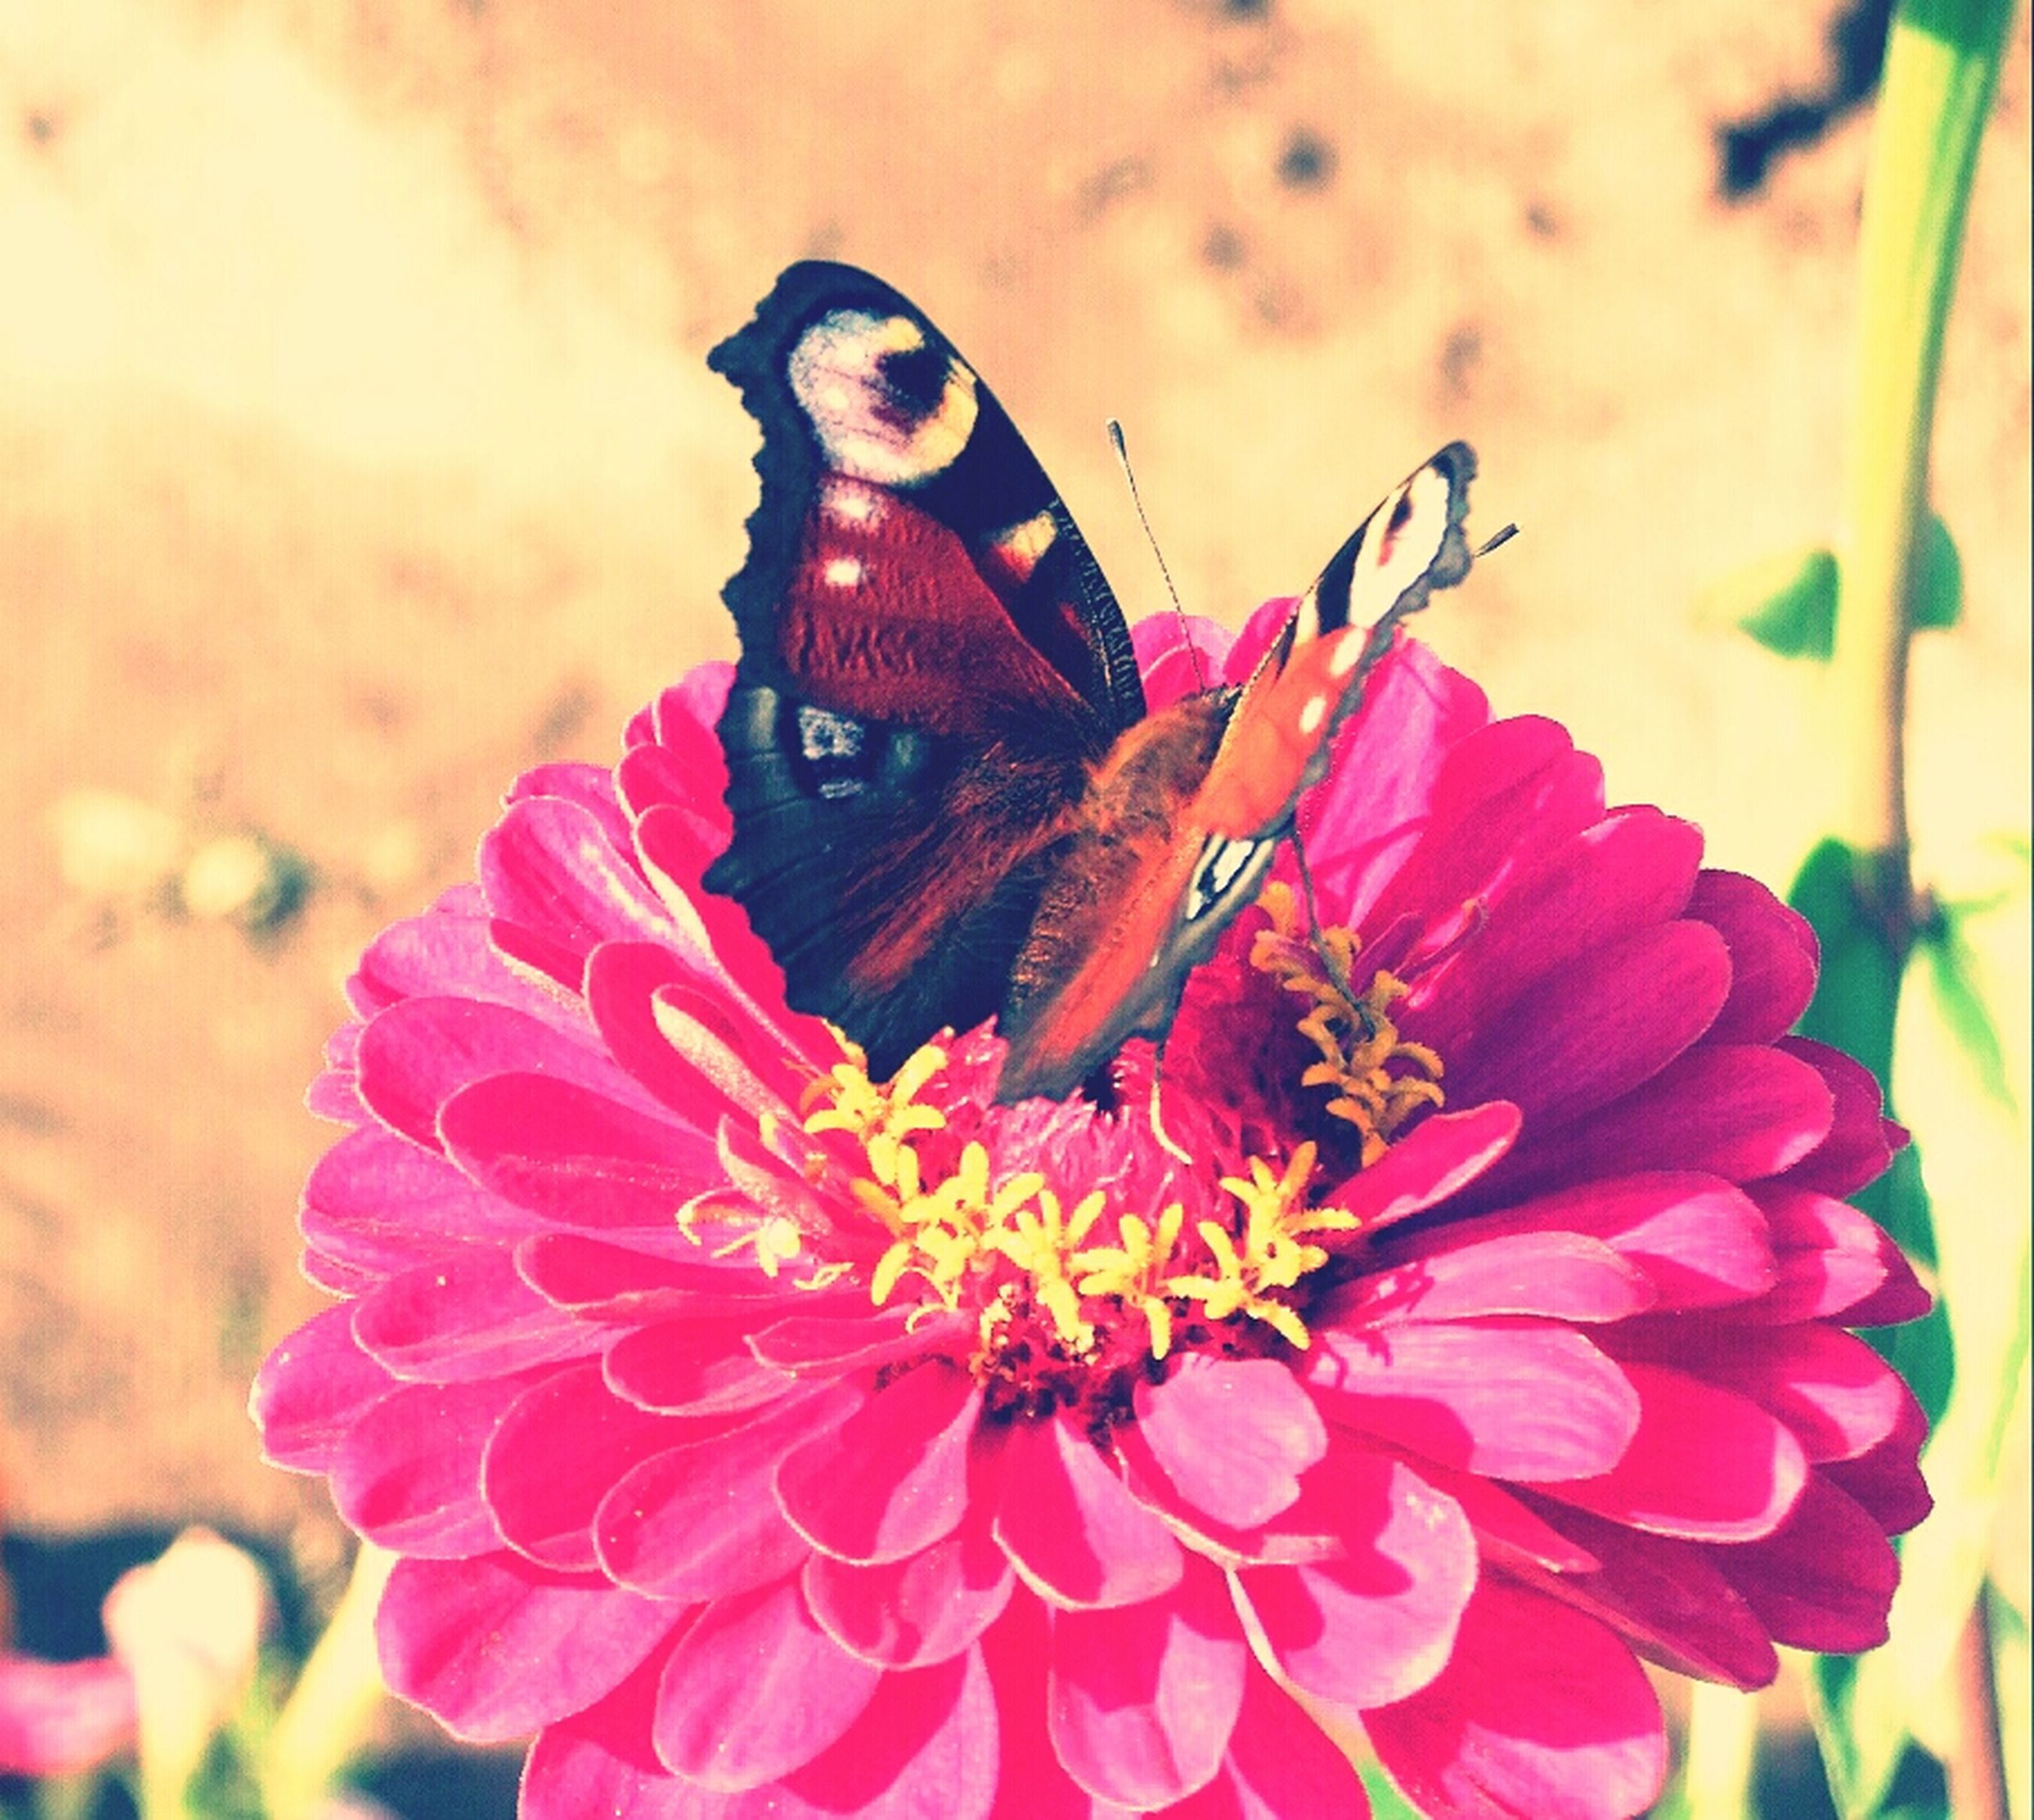 flower, petal, focus on foreground, close-up, fragility, flower head, insect, freshness, beauty in nature, one animal, animals in the wild, animal themes, pink color, nature, wildlife, growth, blooming, plant, outdoors, day